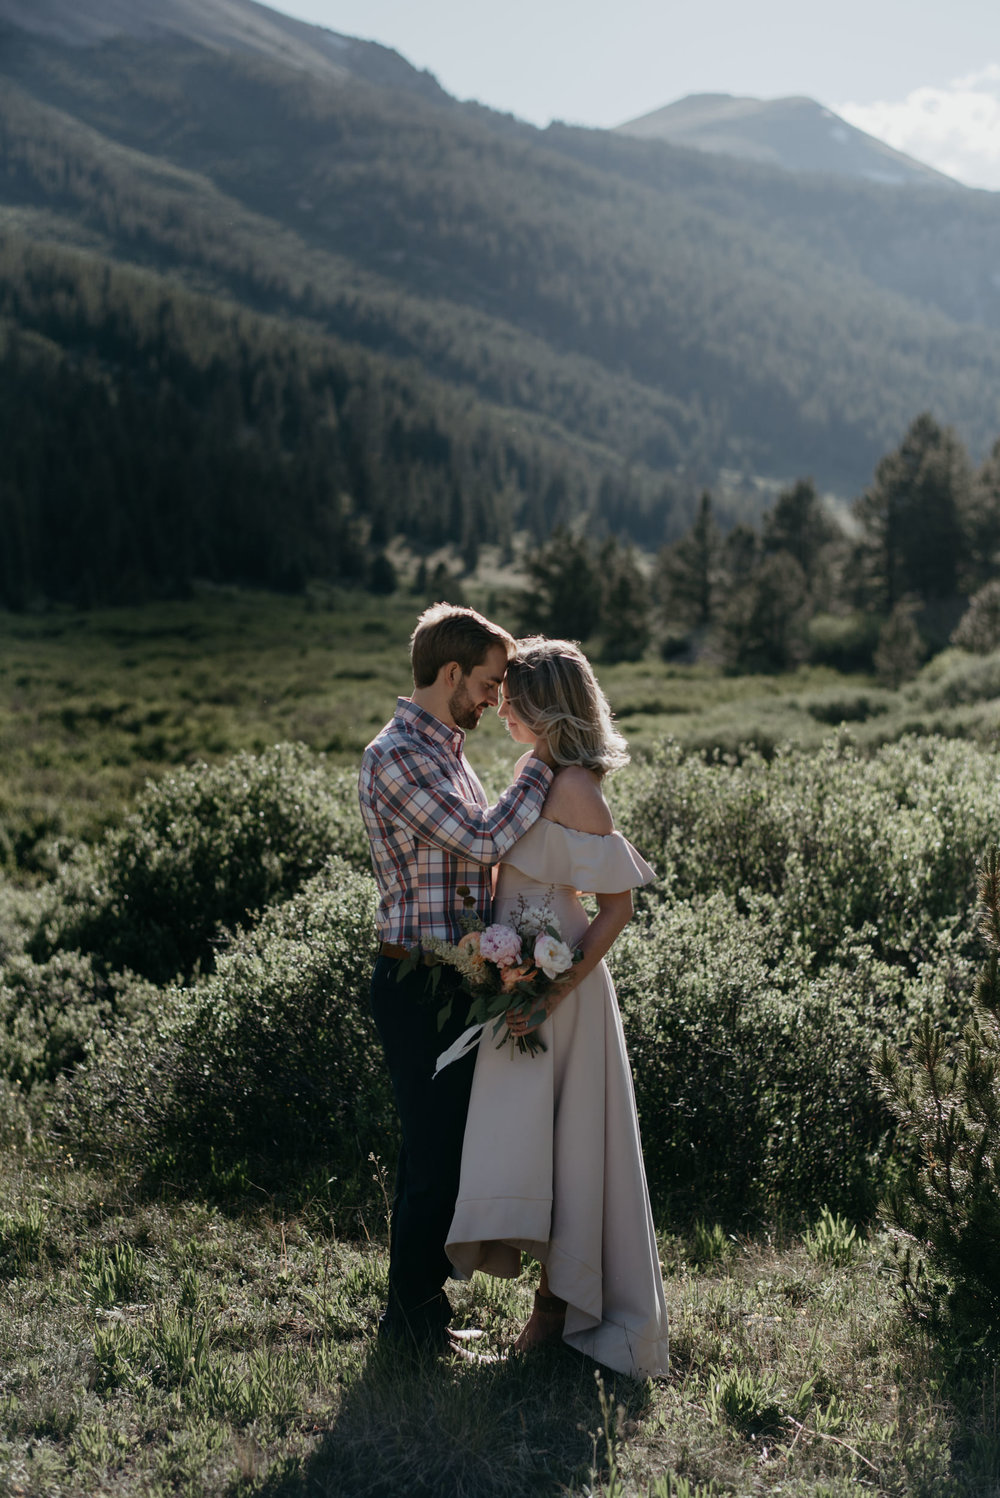 Aspen, Colorado wedding photographer.